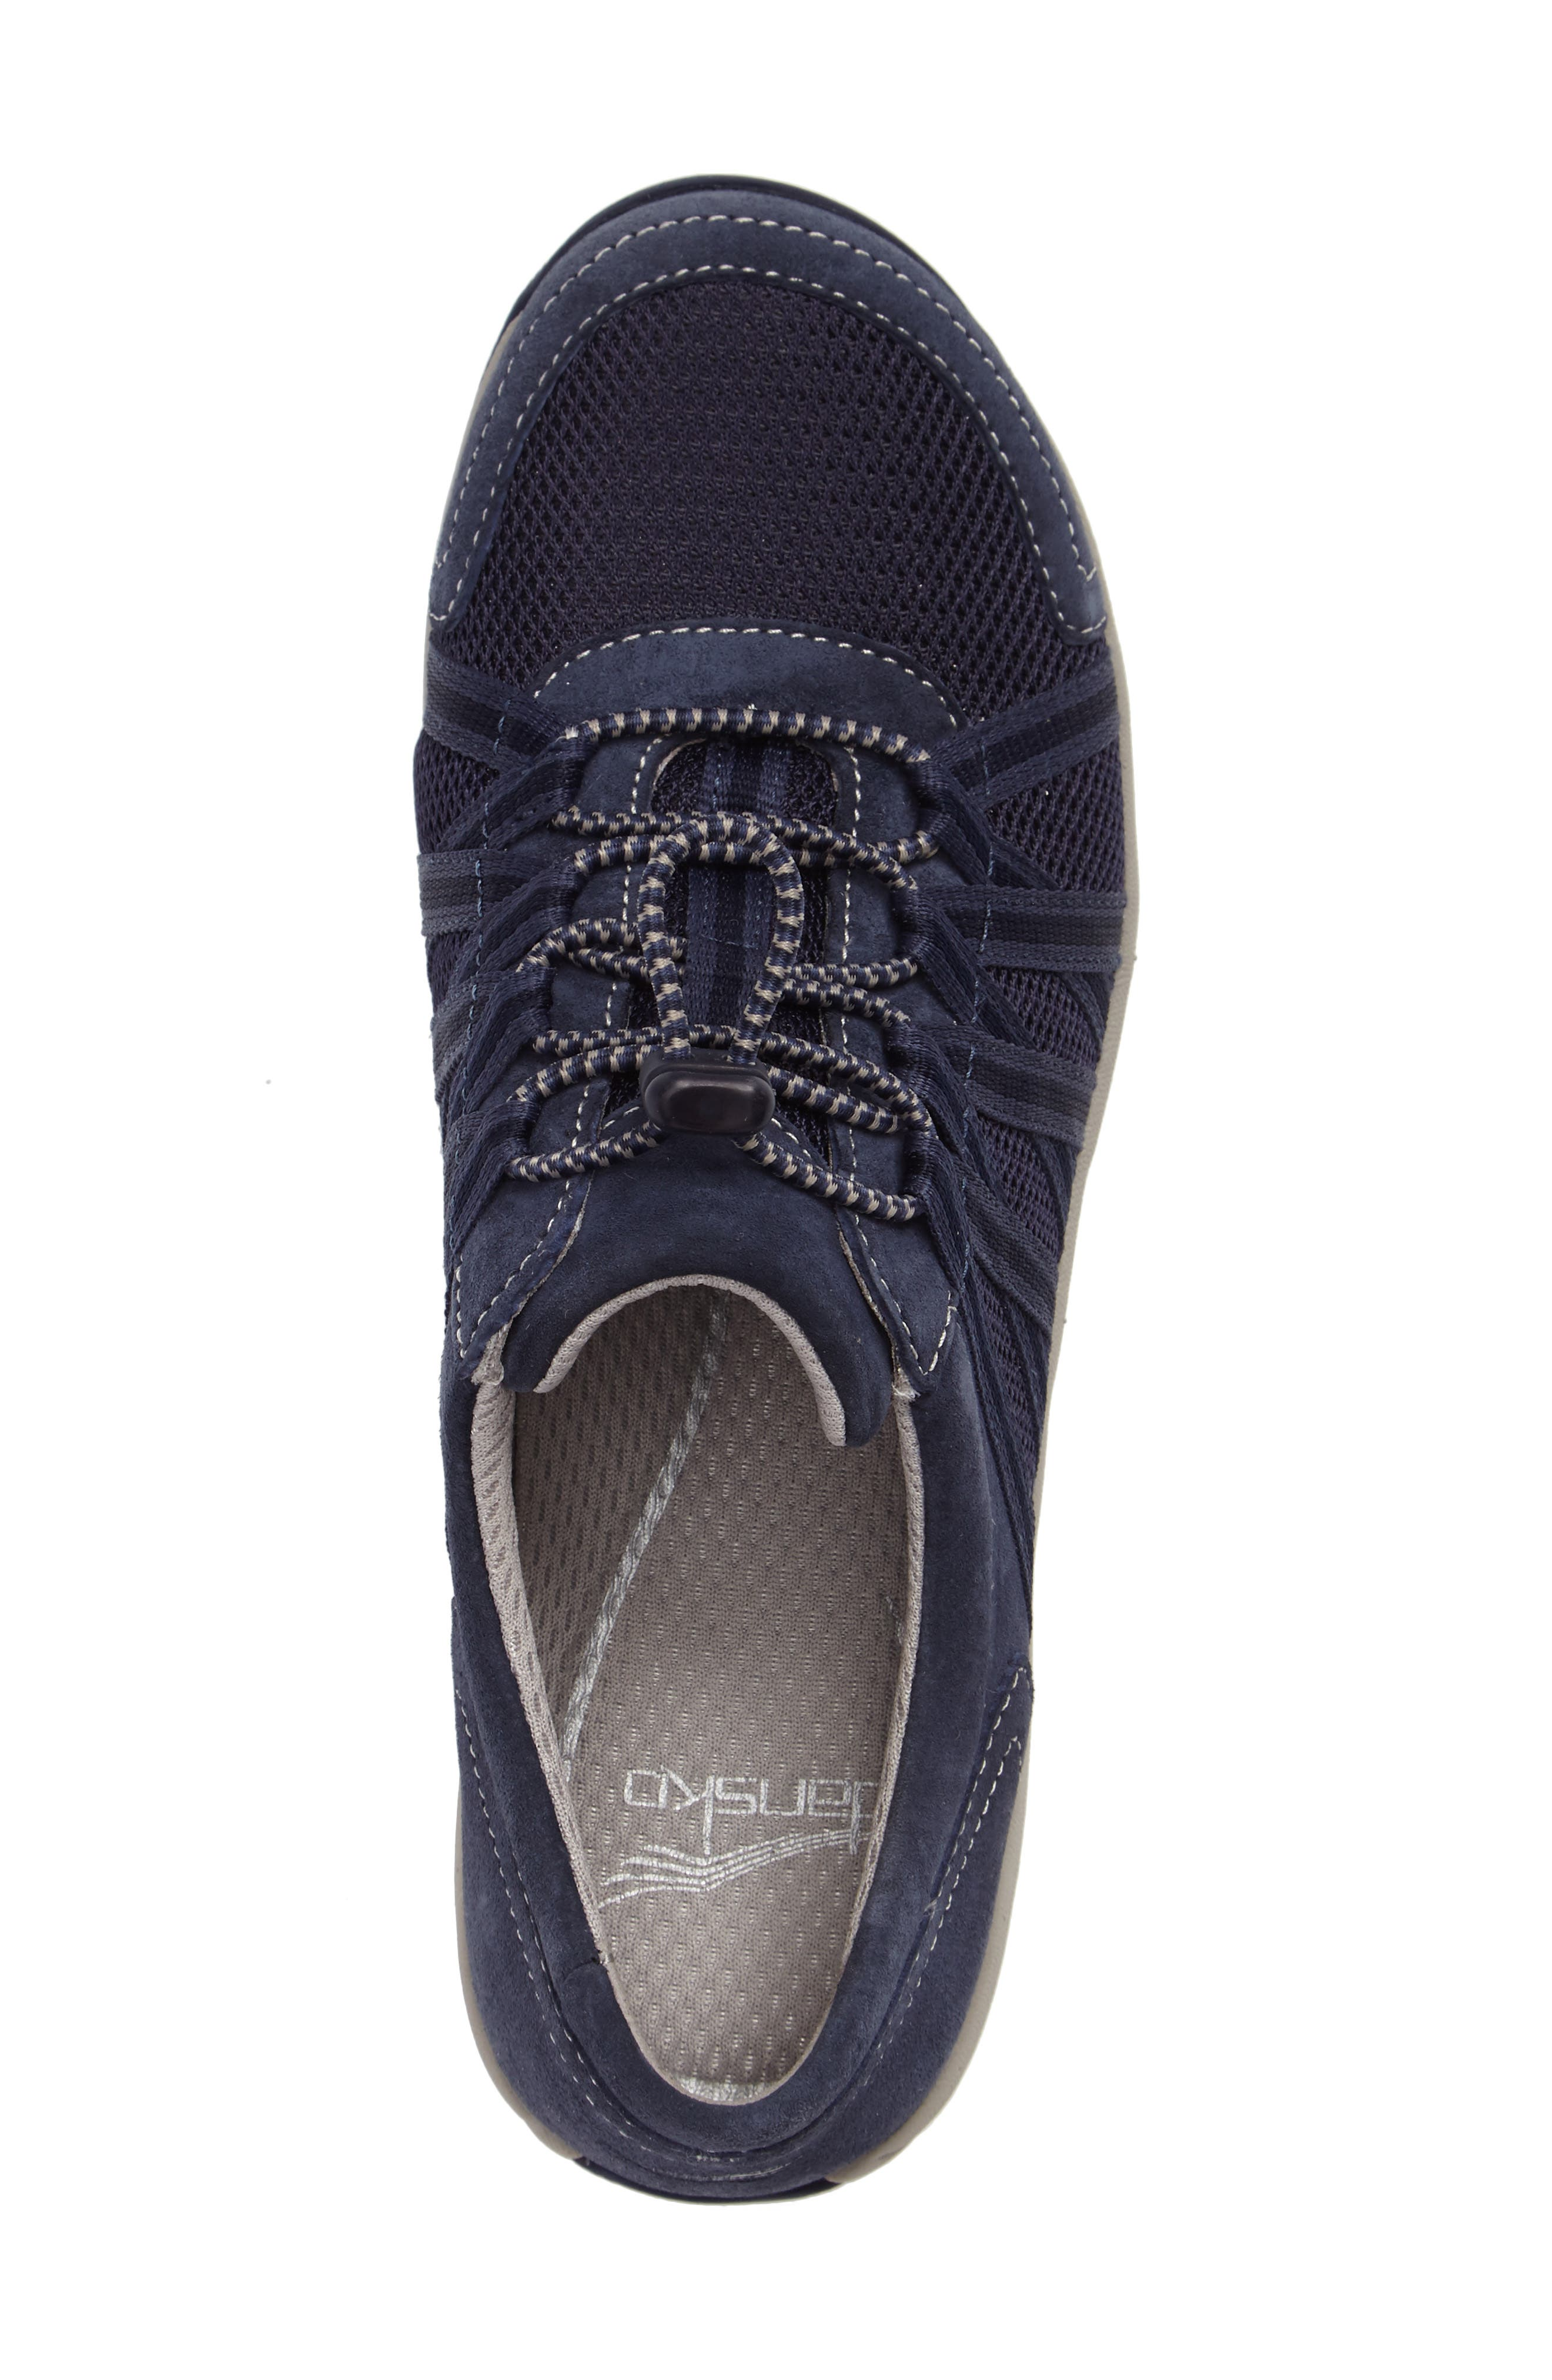 Halifax Collection Honor Sneaker,                             Alternate thumbnail 42, color,